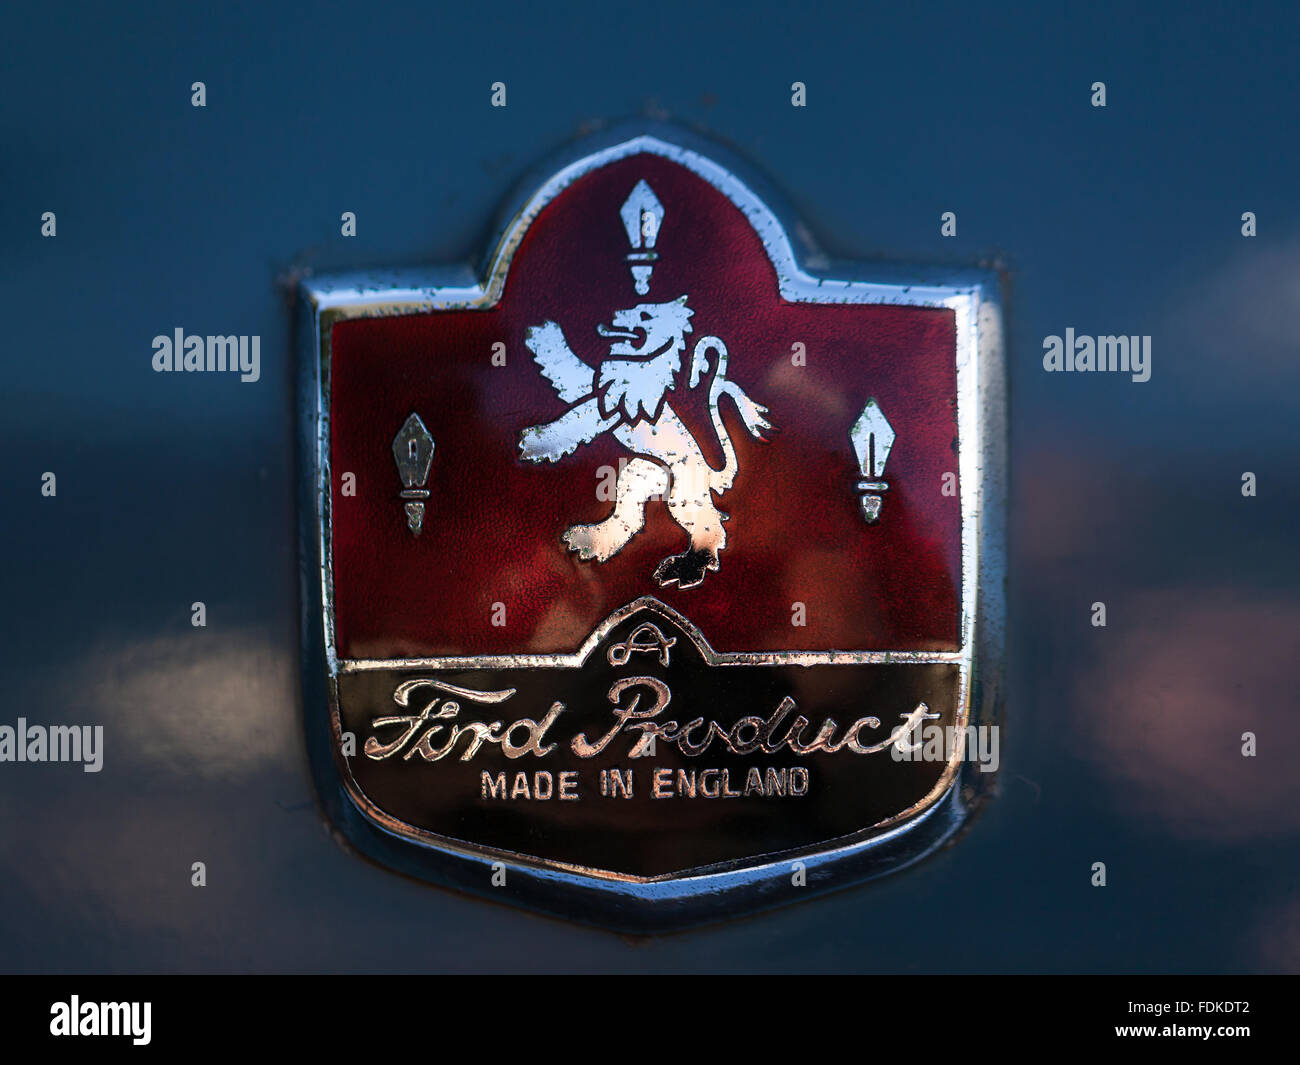 Ford Product (MADE IN ENGLAND) metal car badge - Stock Image